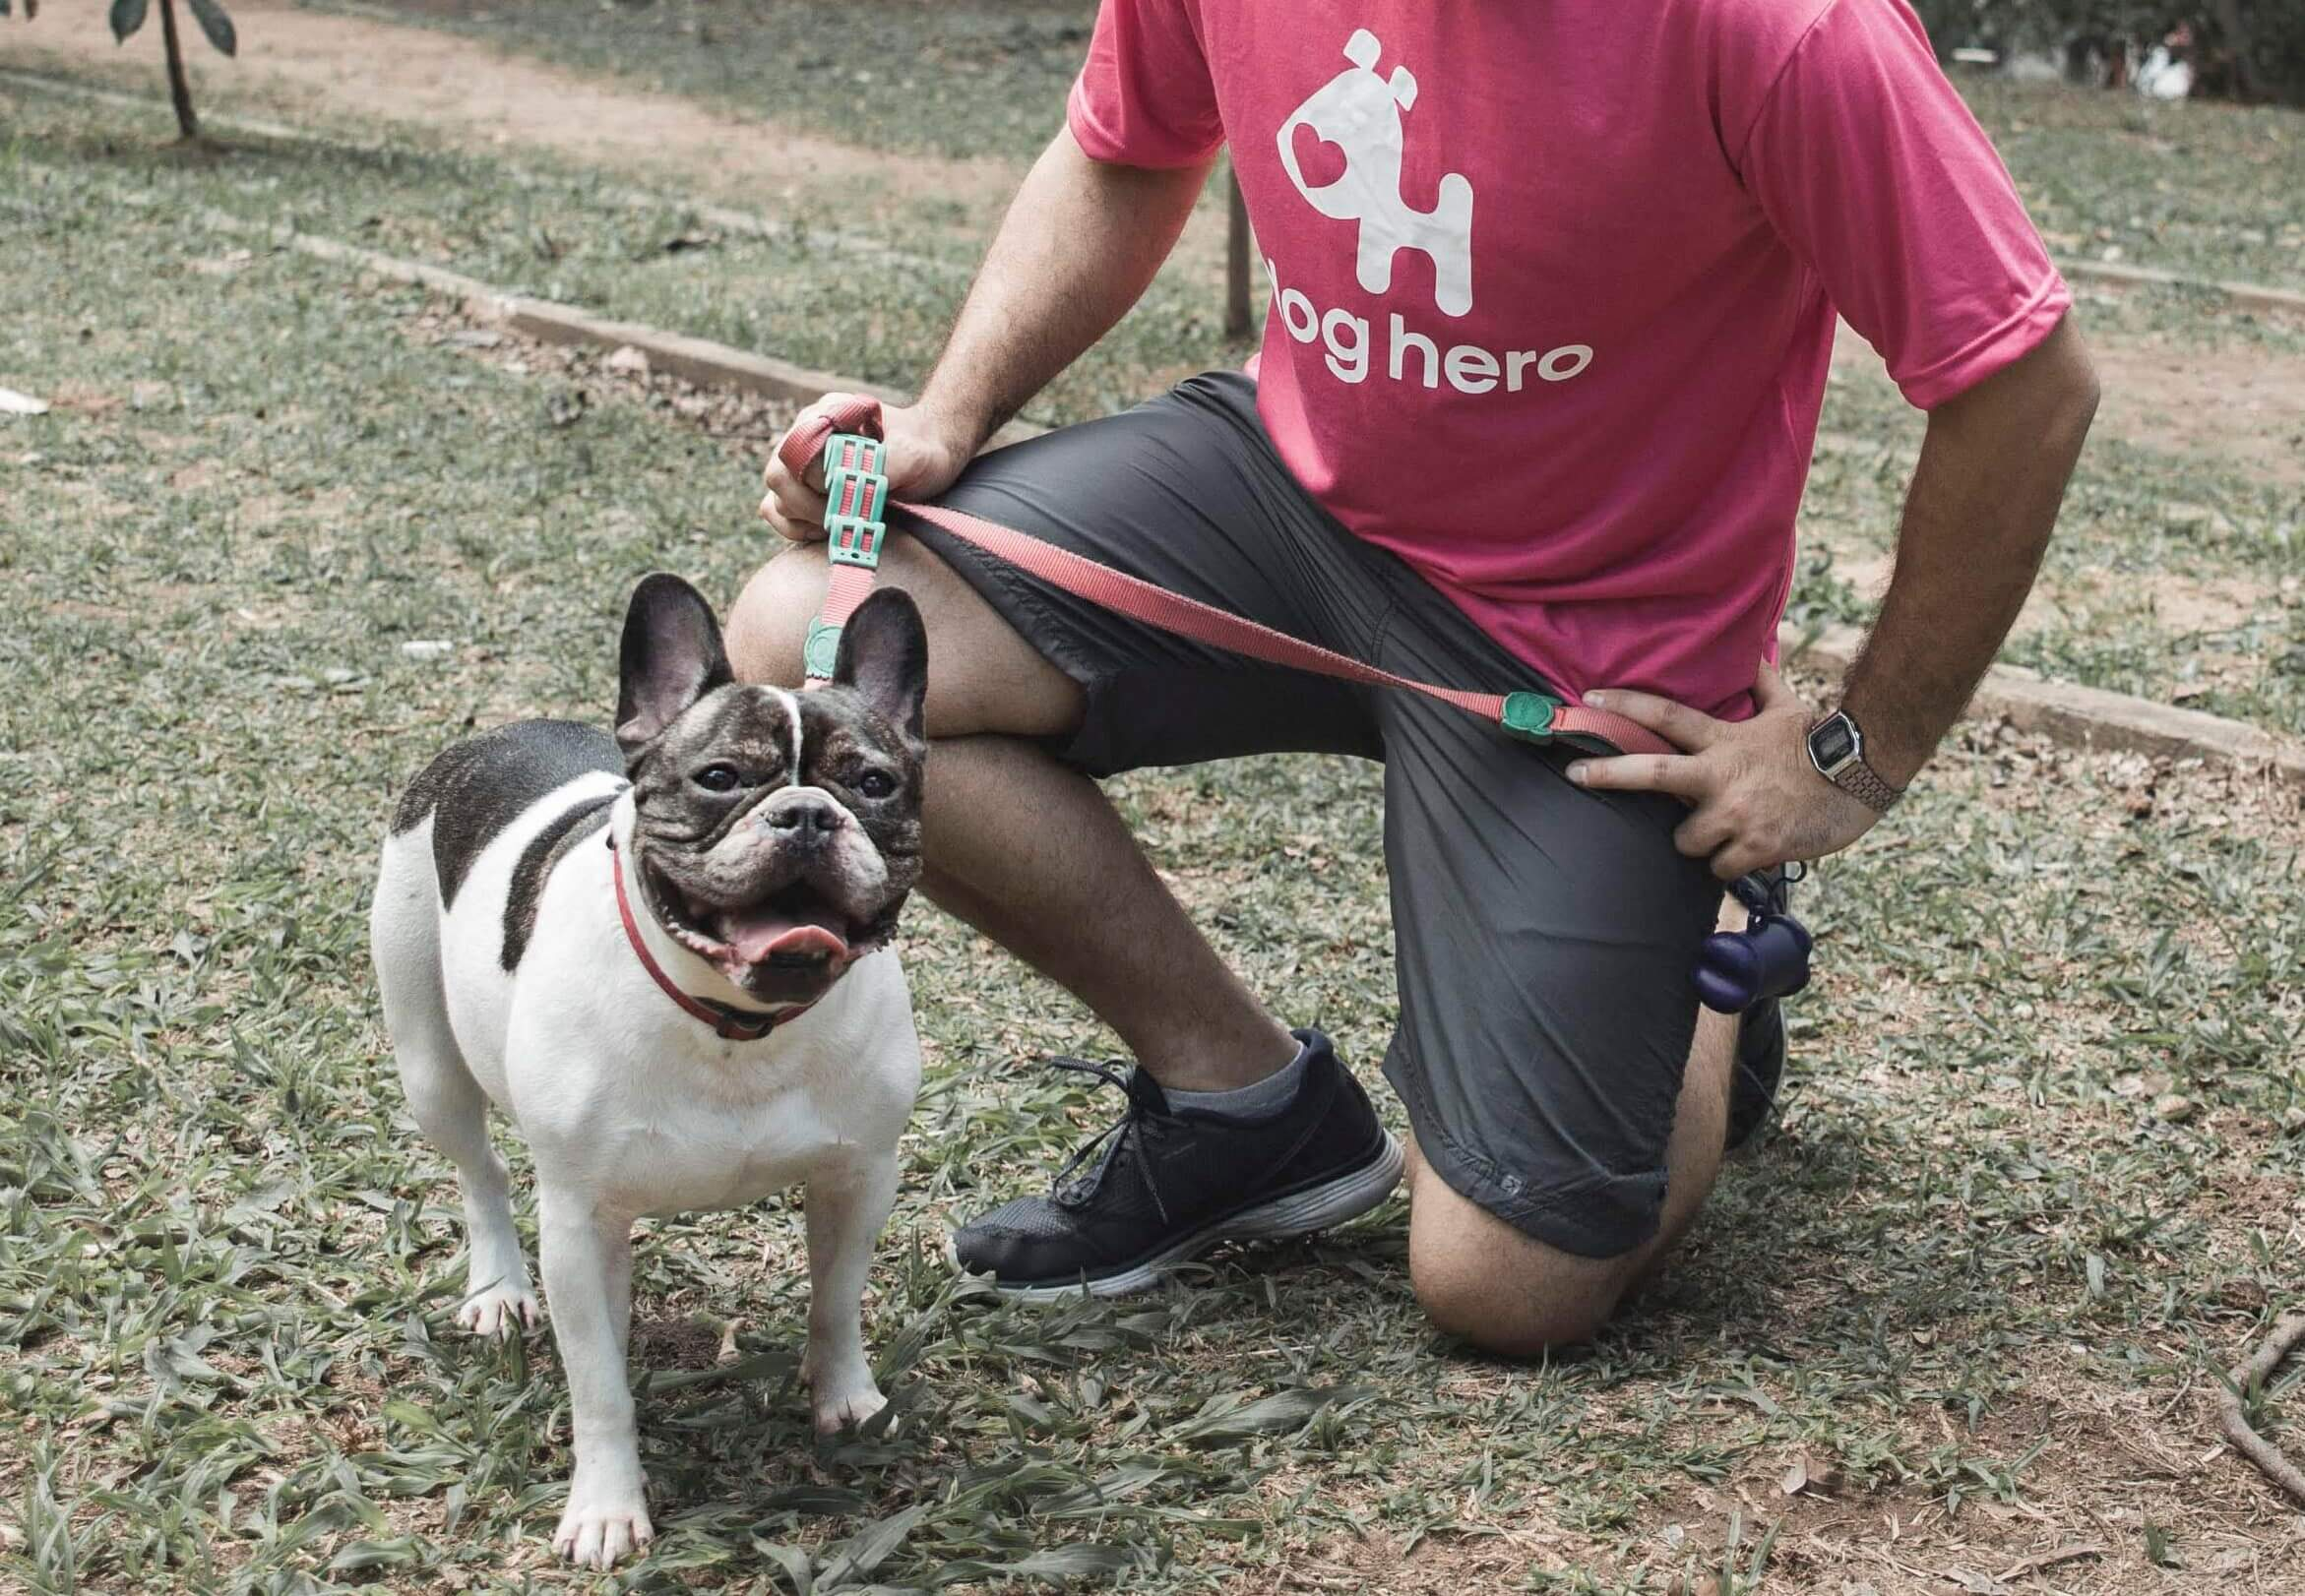 cachorro feliz dog walker doghero